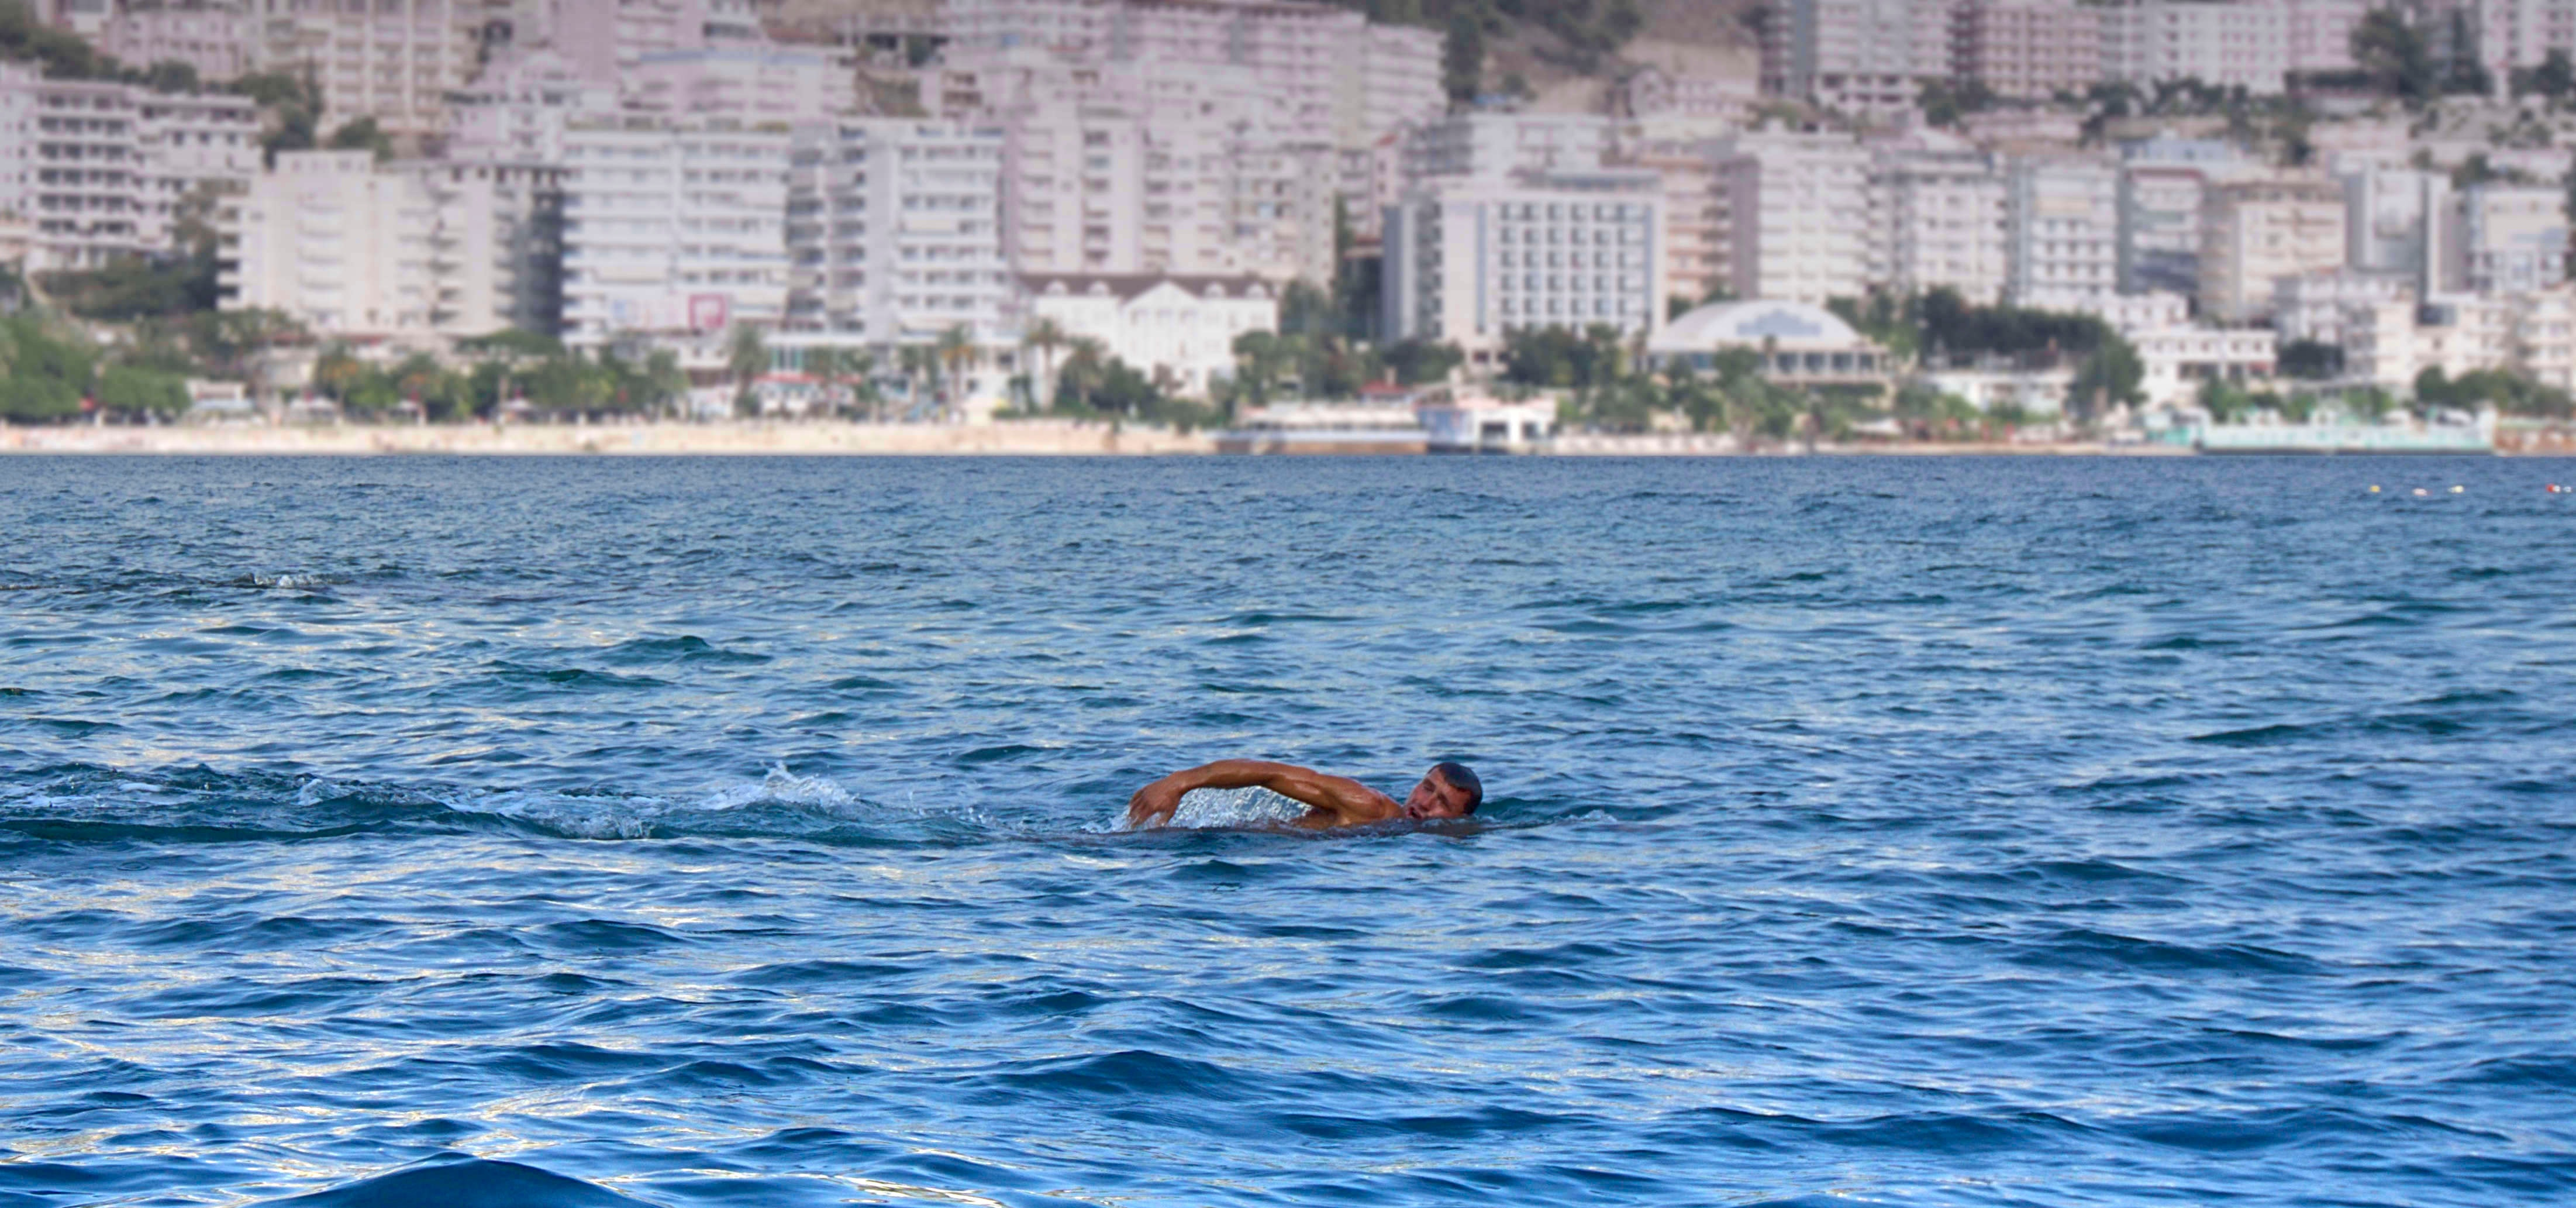 Man Swimming in a Body of Water White Concrete High Rise Building in Background, Summer, Sport, Seashore, Swimmer, HQ Photo